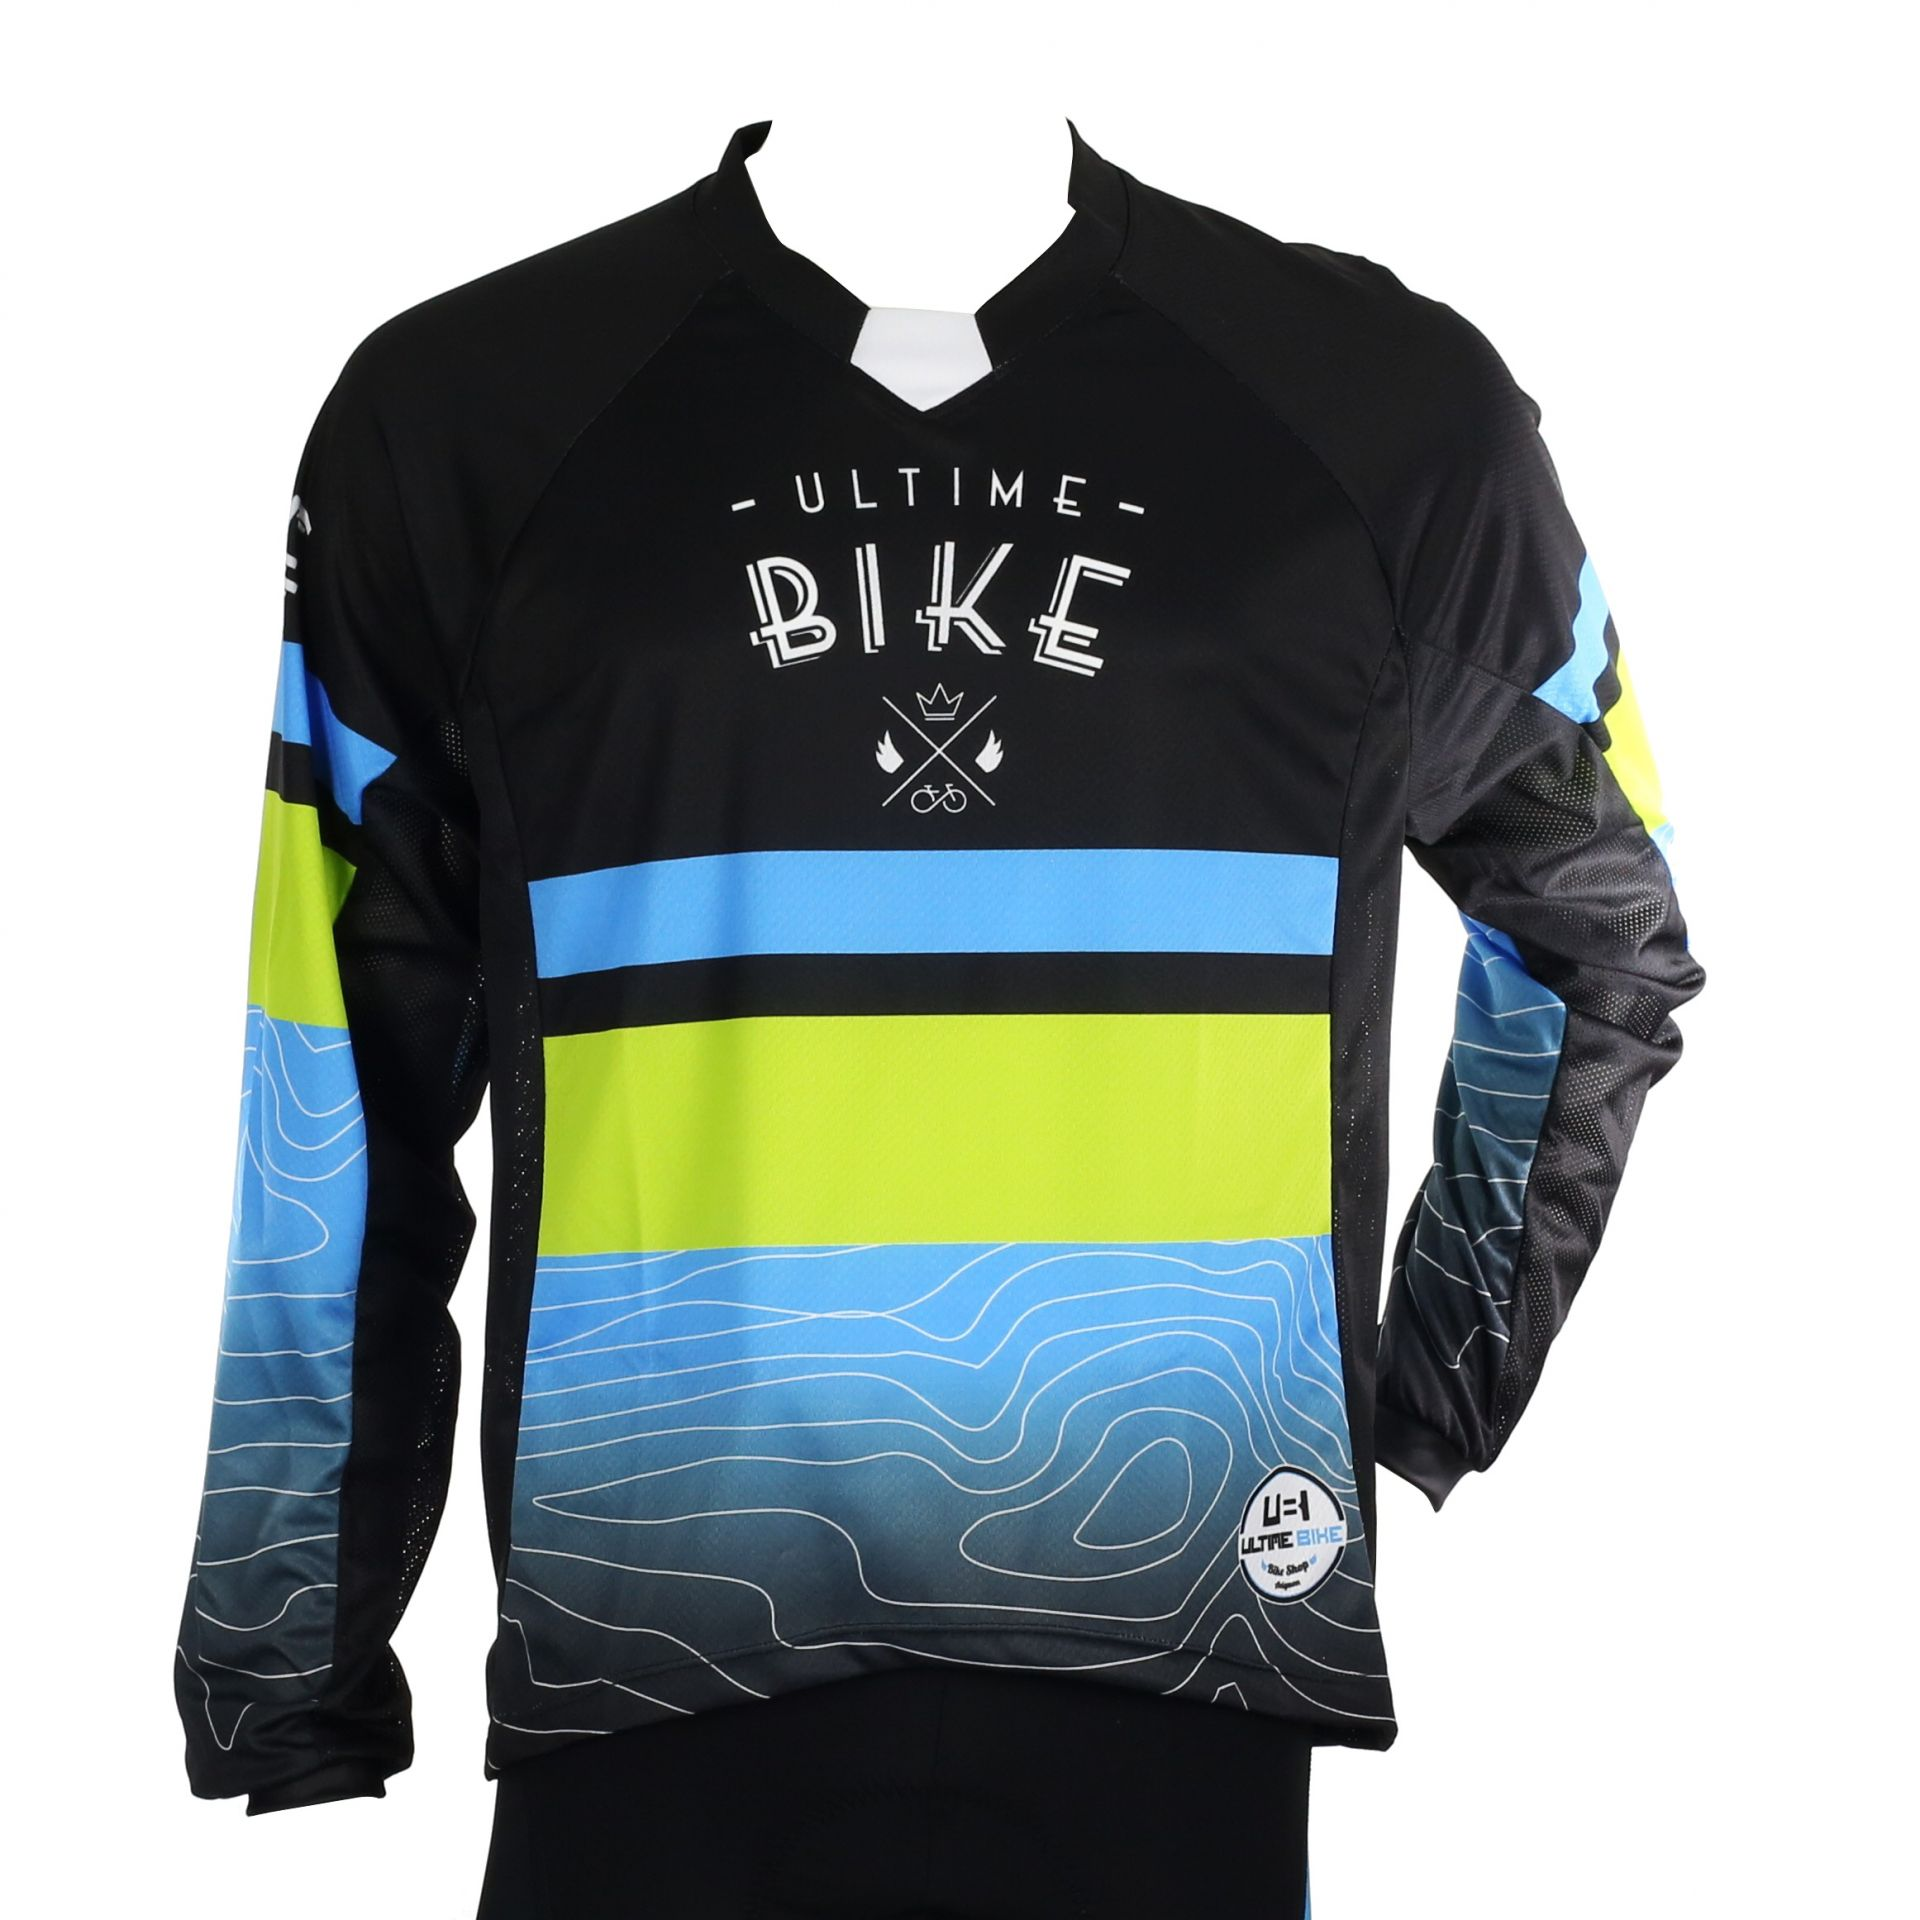 Maillot UltimeBike Enduro by TACTIC Manches longues - M